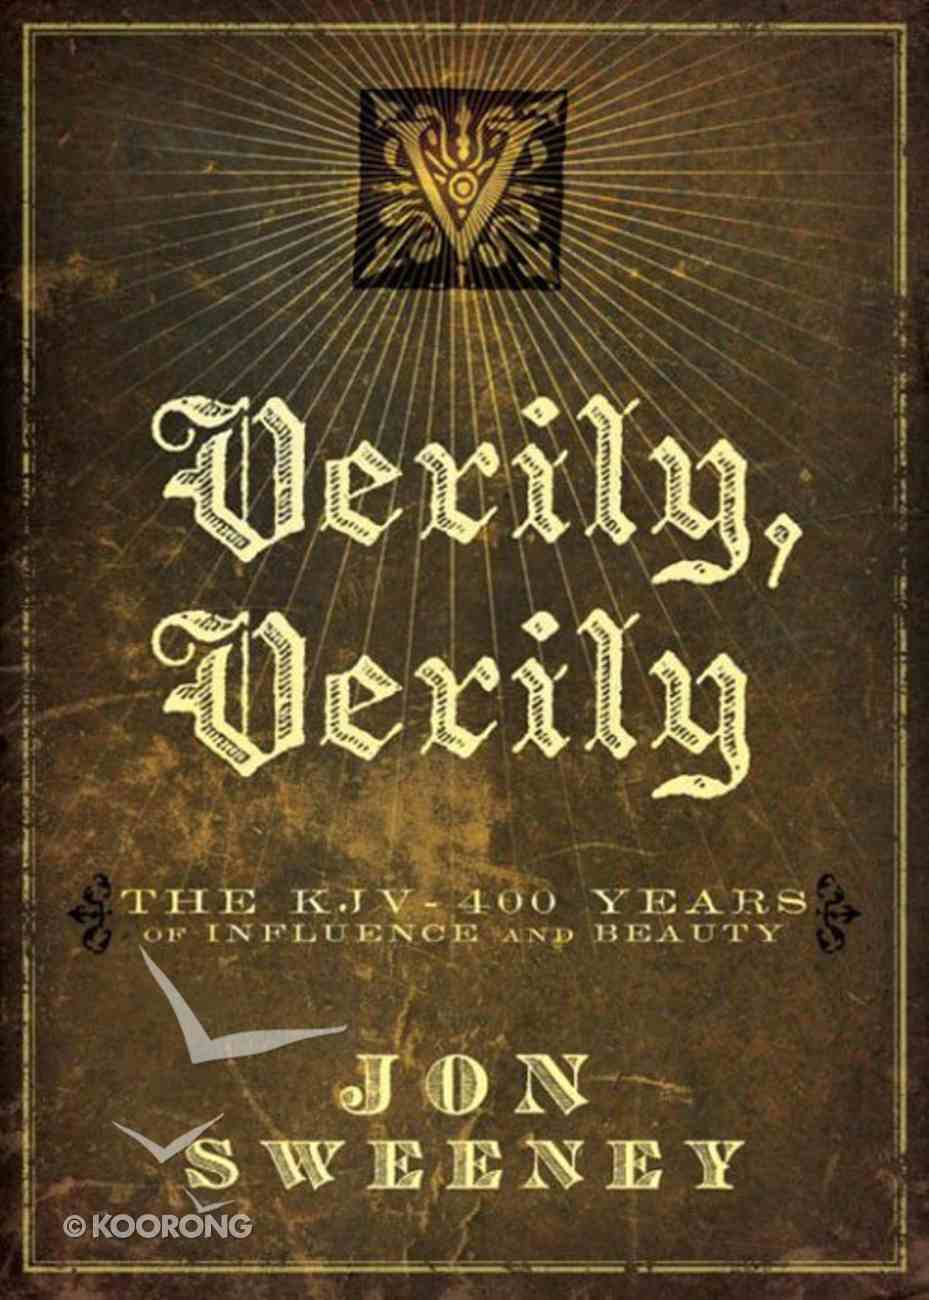 Verily, Verily: The KJV - 400 Years of Influence and Beauty eBook